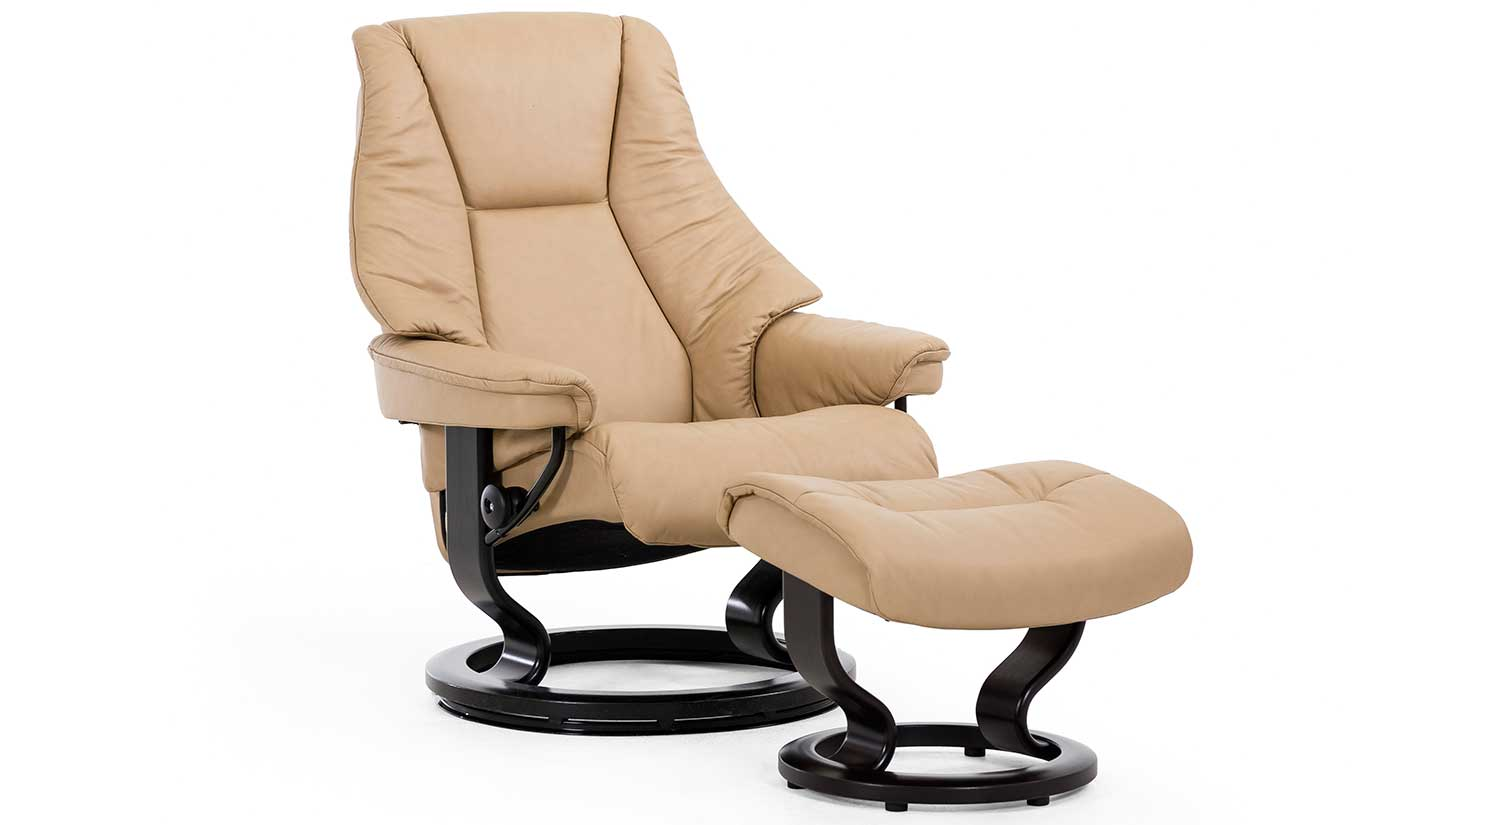 Live Stressless Chair and Ottoman